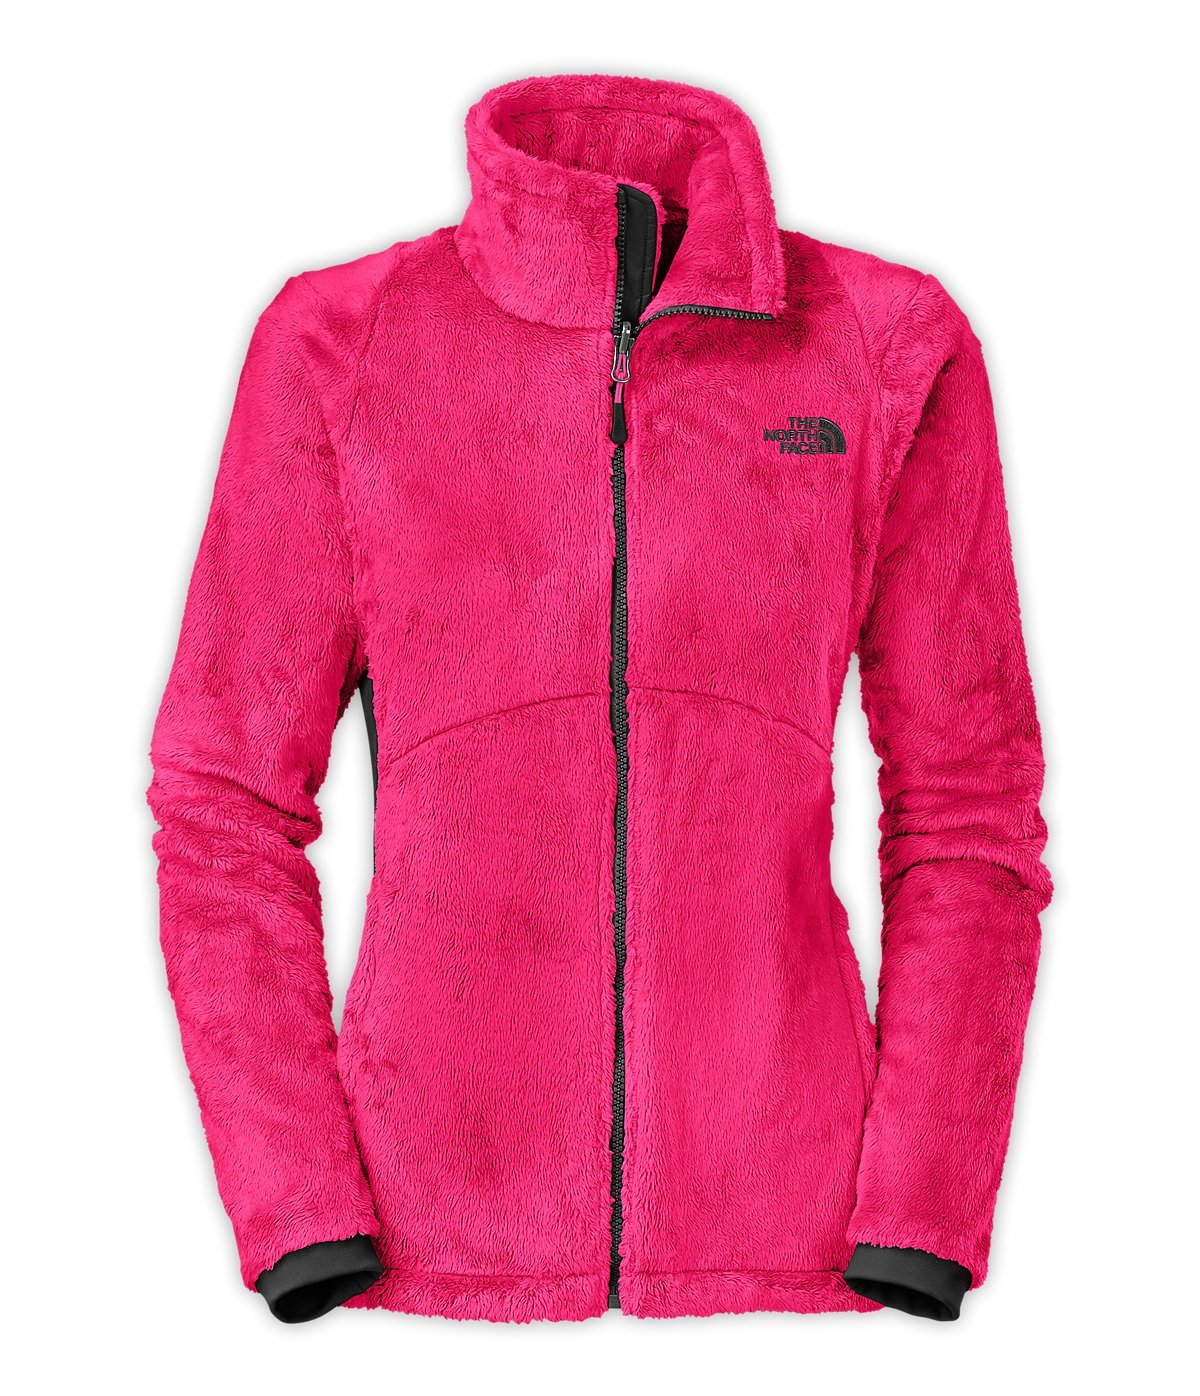 4f86c7744 Cheap North Face Osito Jacket, find North Face Osito Jacket deals on ...